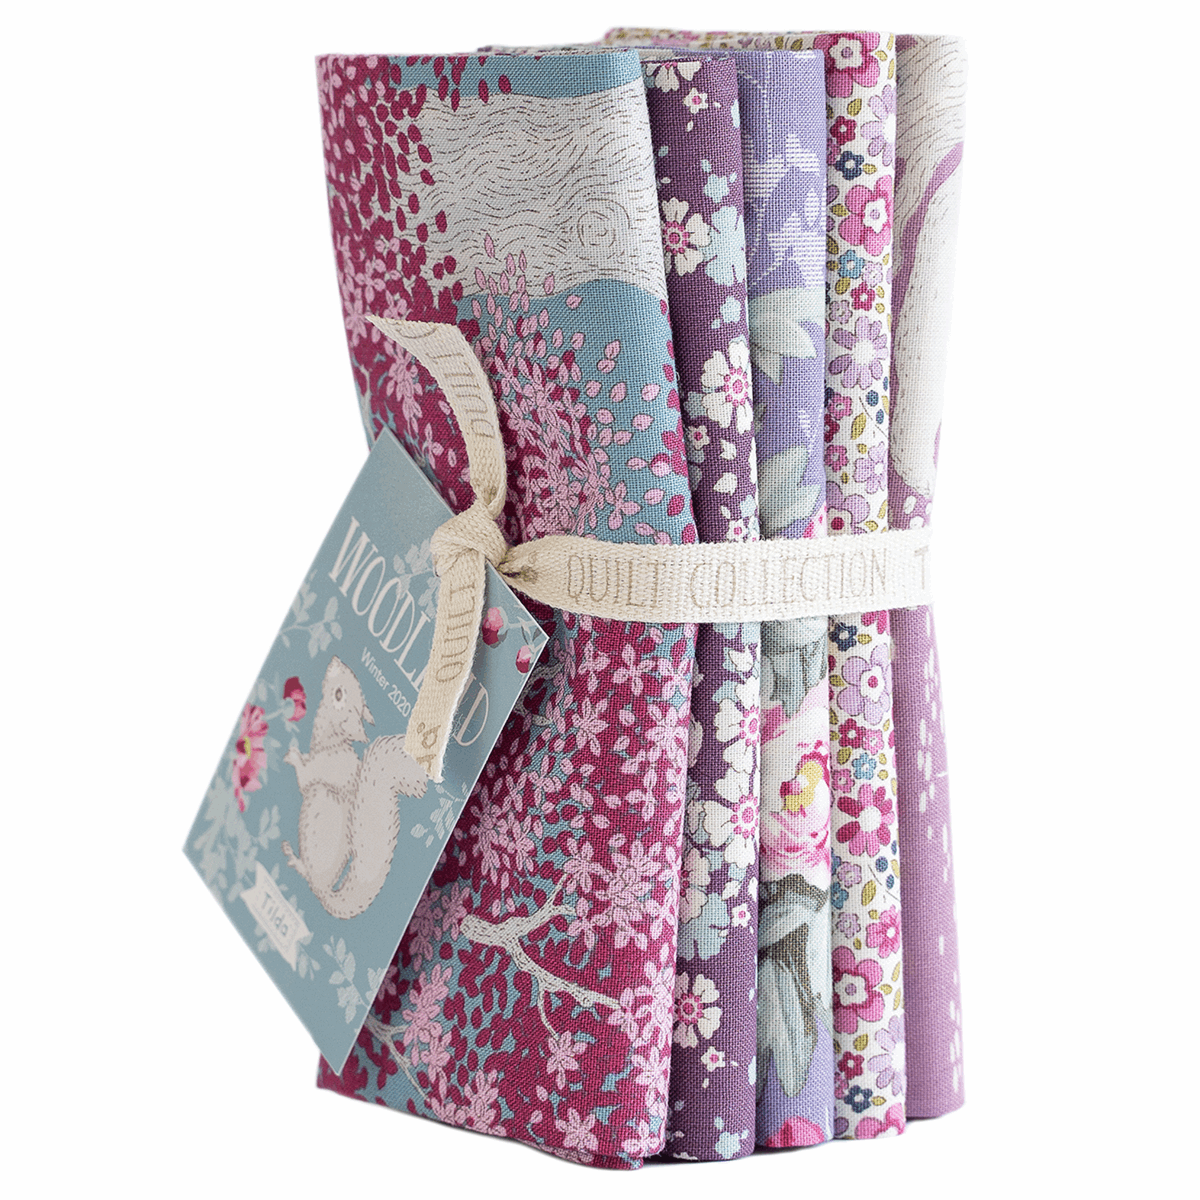 Tilda - Woodland Fat Quarter Bundle - 50 x 55cm - 5 Pieces - Lilac/Lavender * Limited Edition *